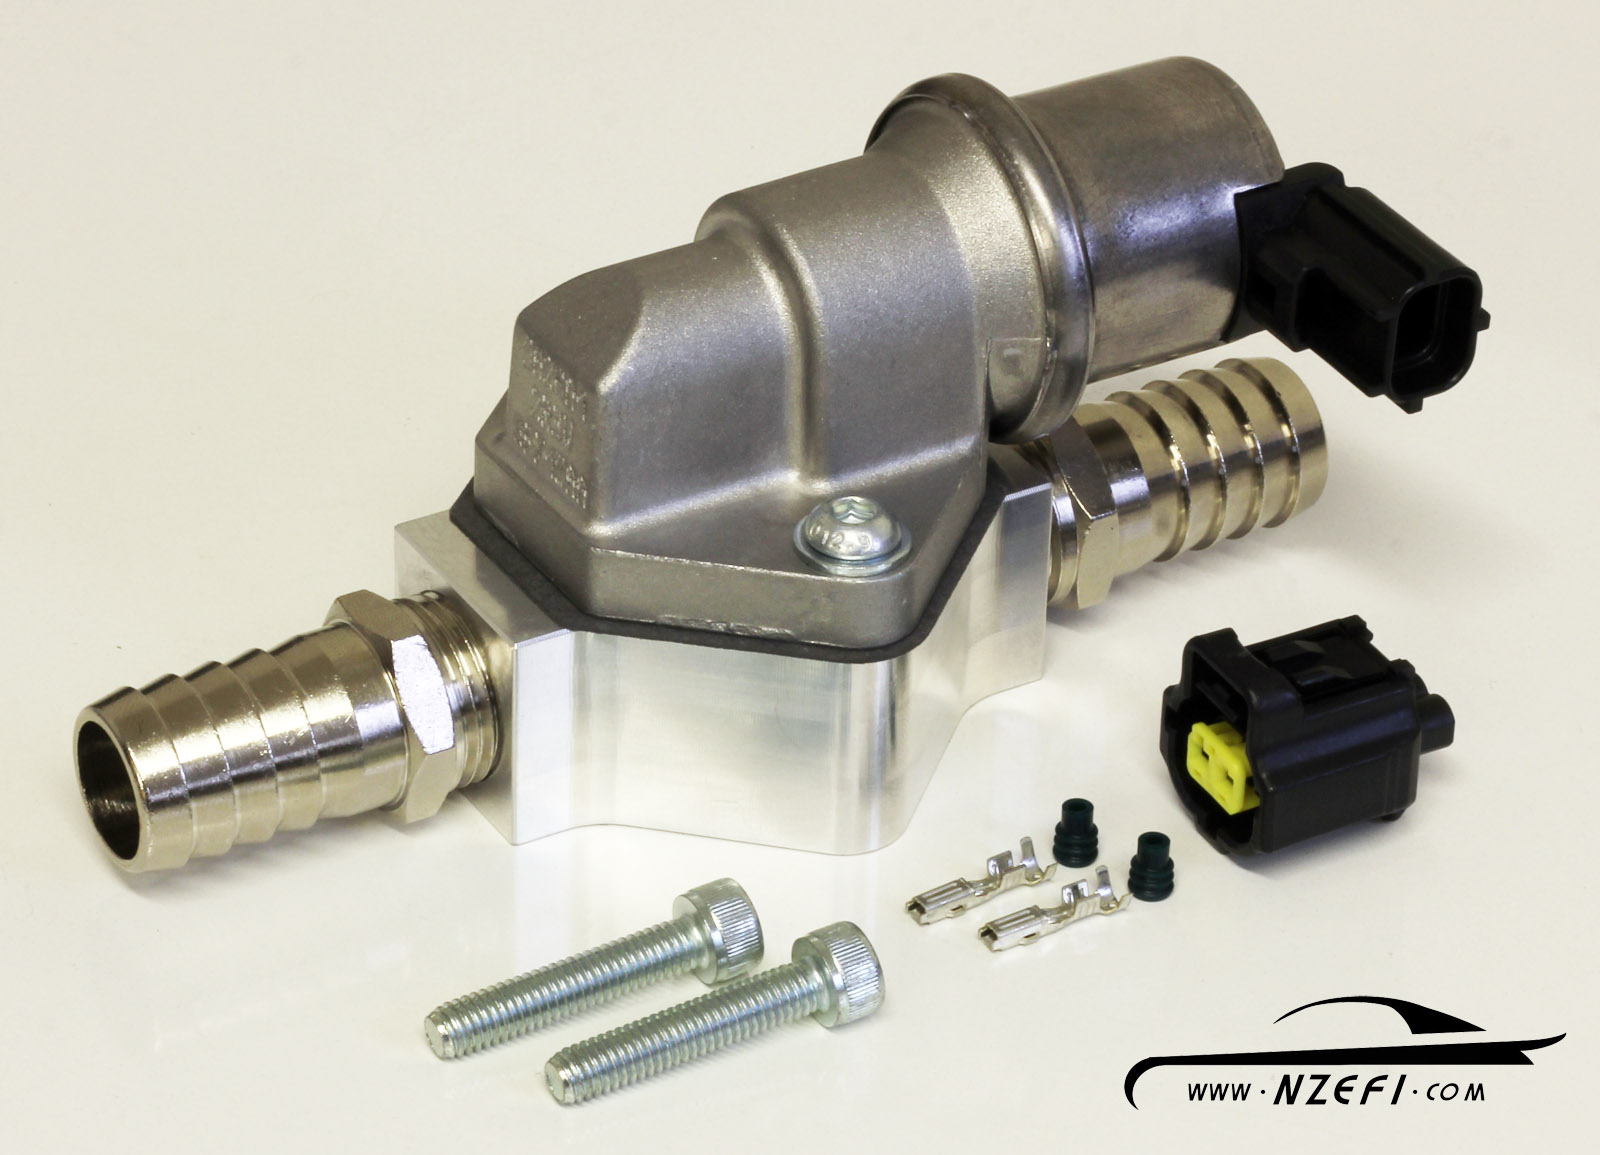 hight resolution of 2 wire idle speed solenoid kit with remote mount and straight barb fittings 2